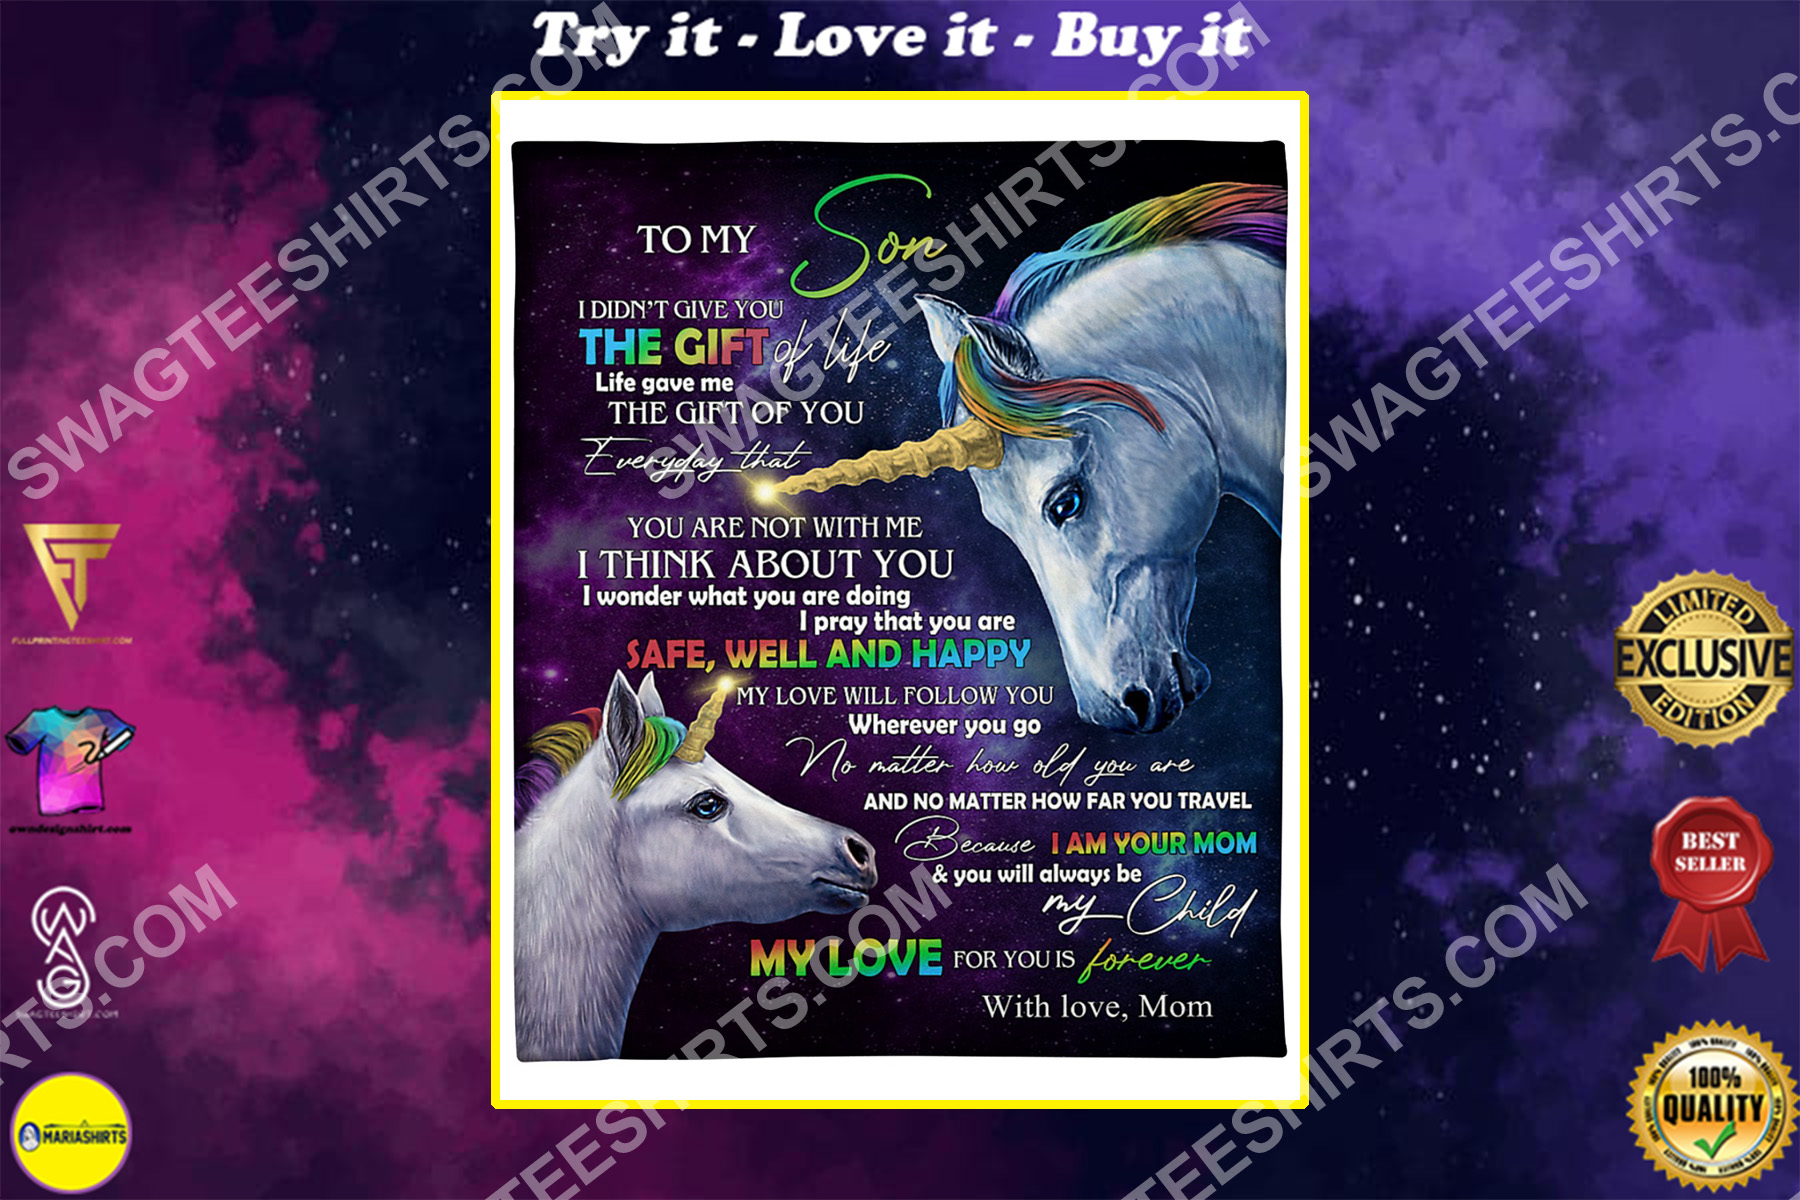 unicorn to my son my love for you is forever your mom blanket